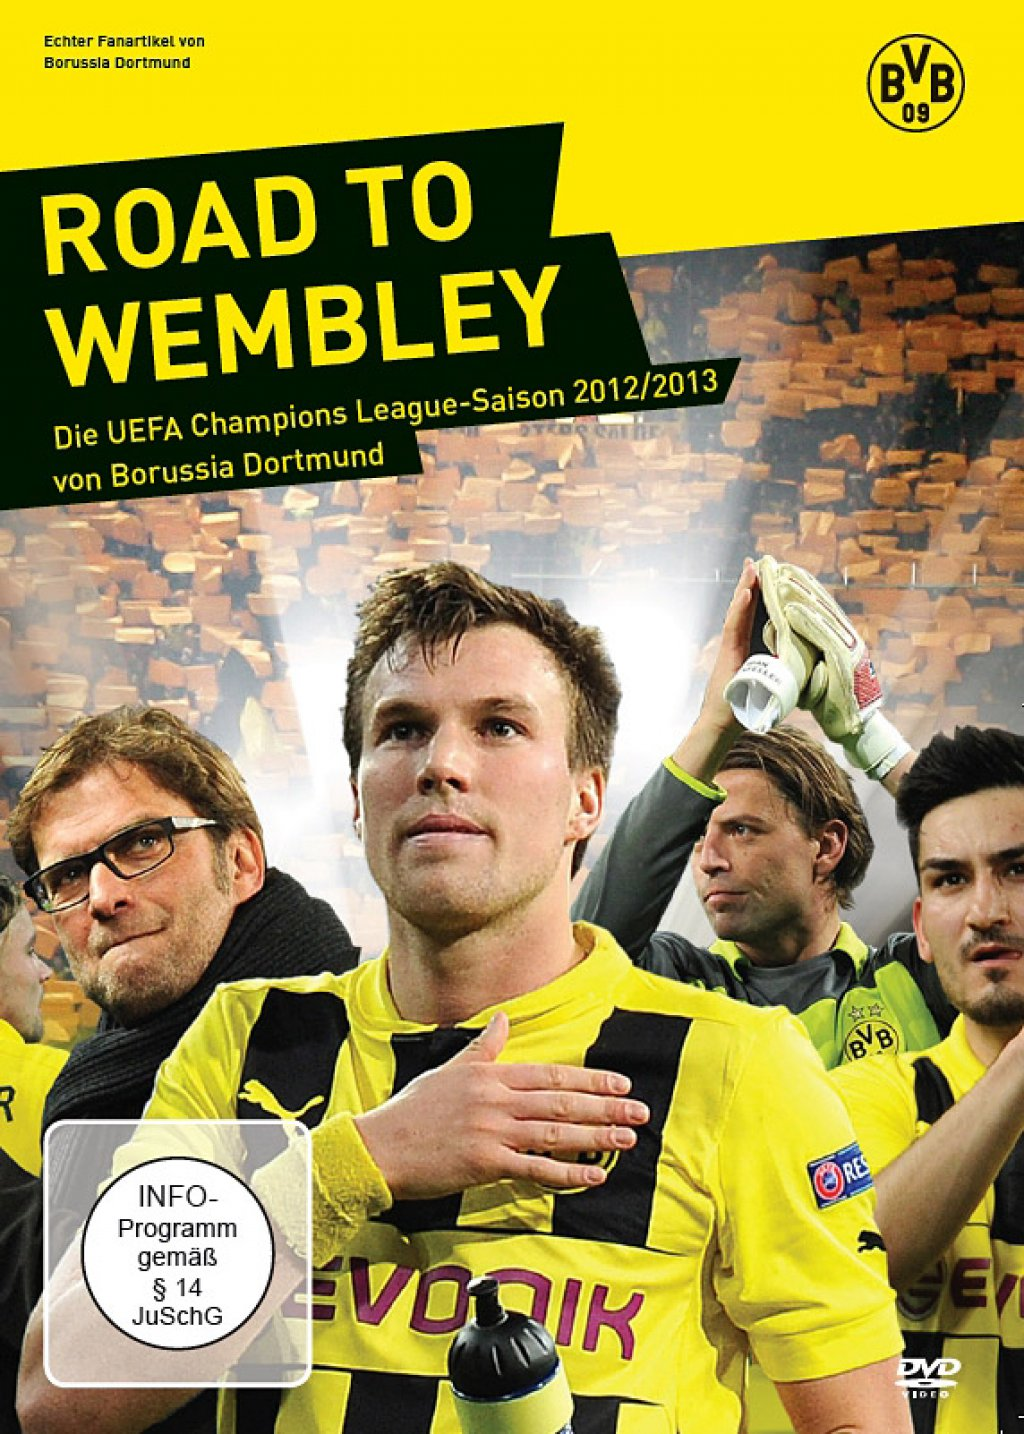 Road To Wembley - Die UEFA Champions League Saison 2012/2013 von Borussia Dortmund (DVD)